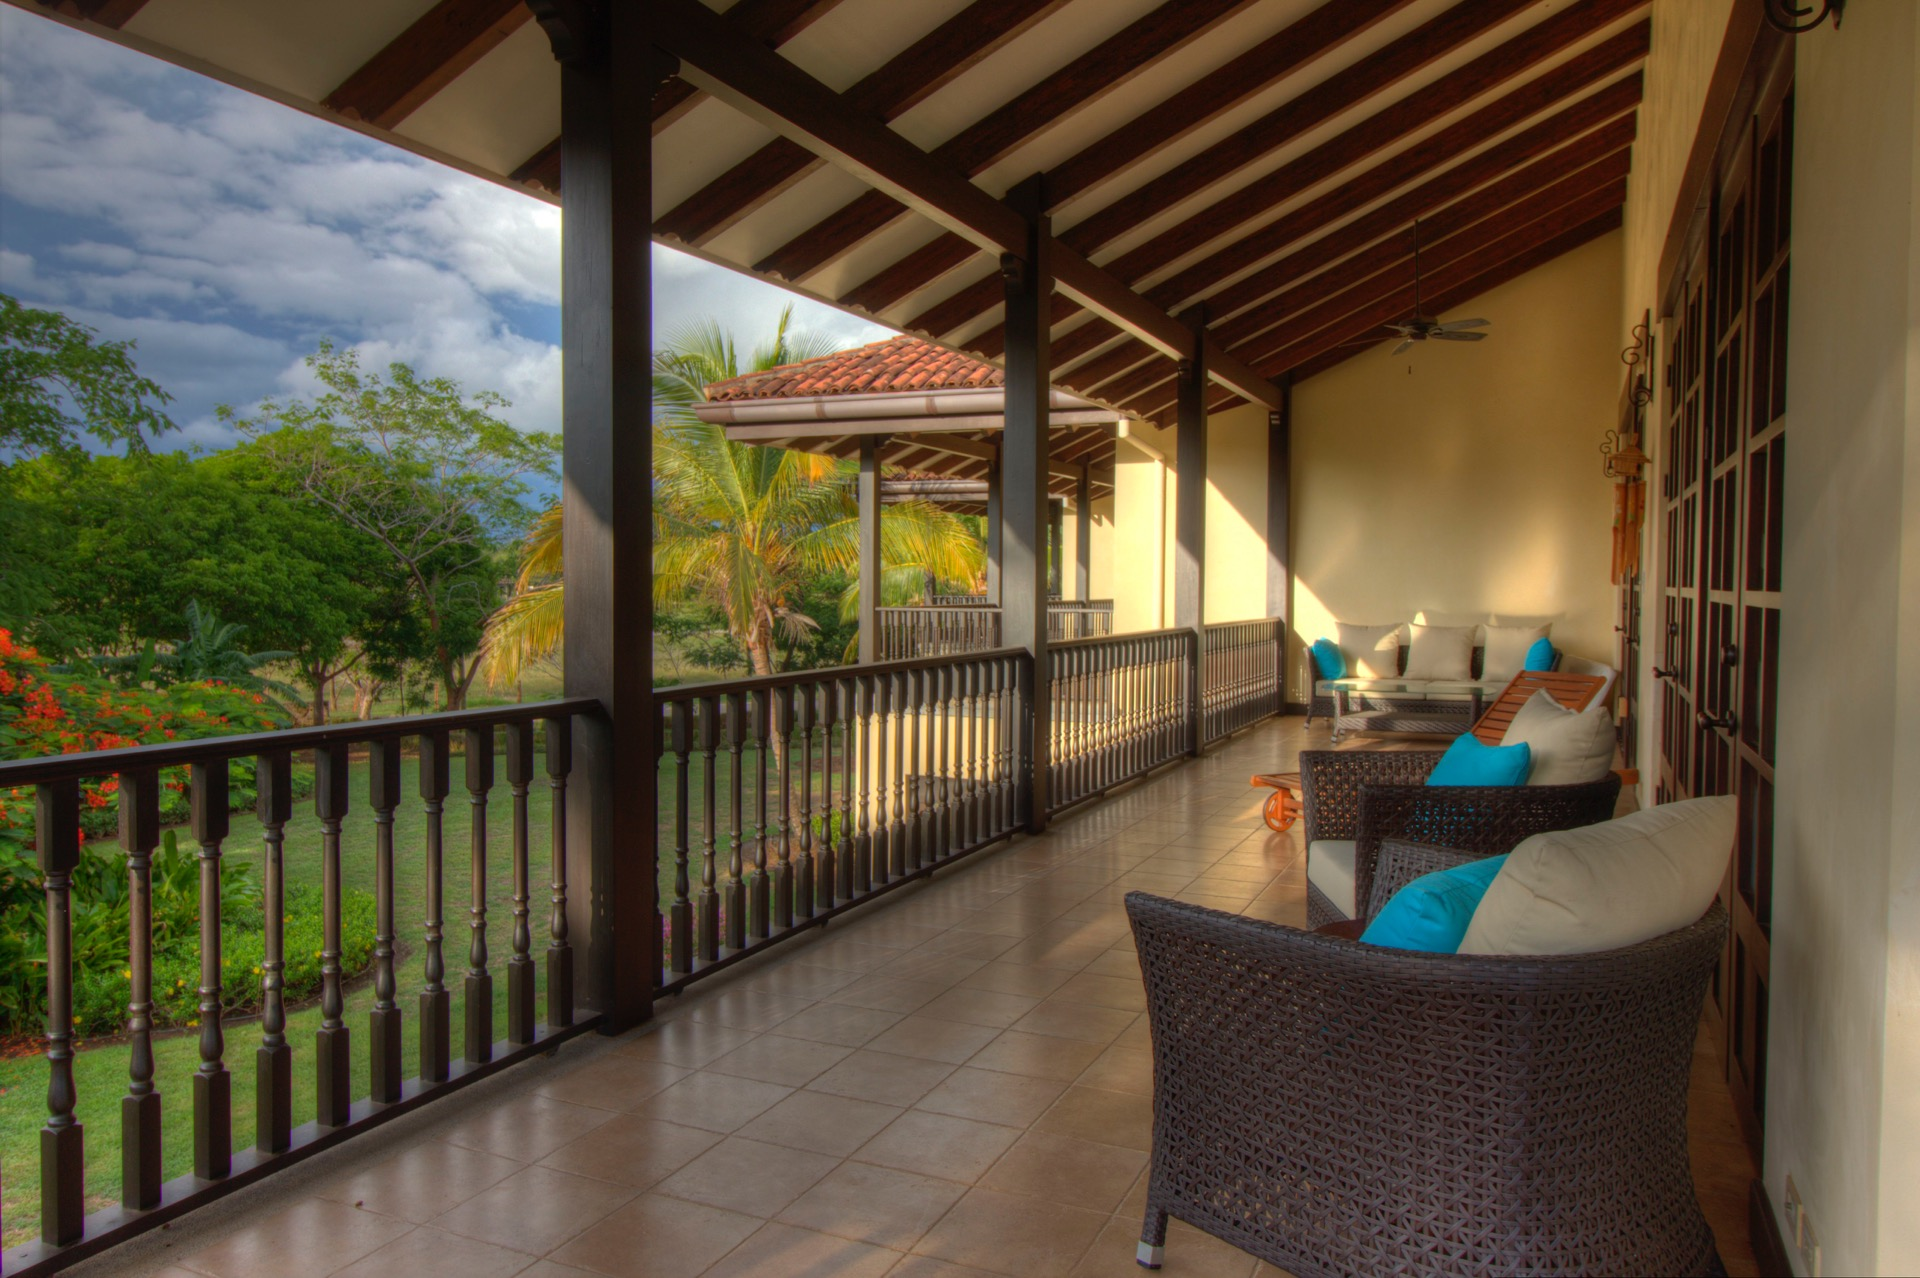 Private balcony with outdoor sitting